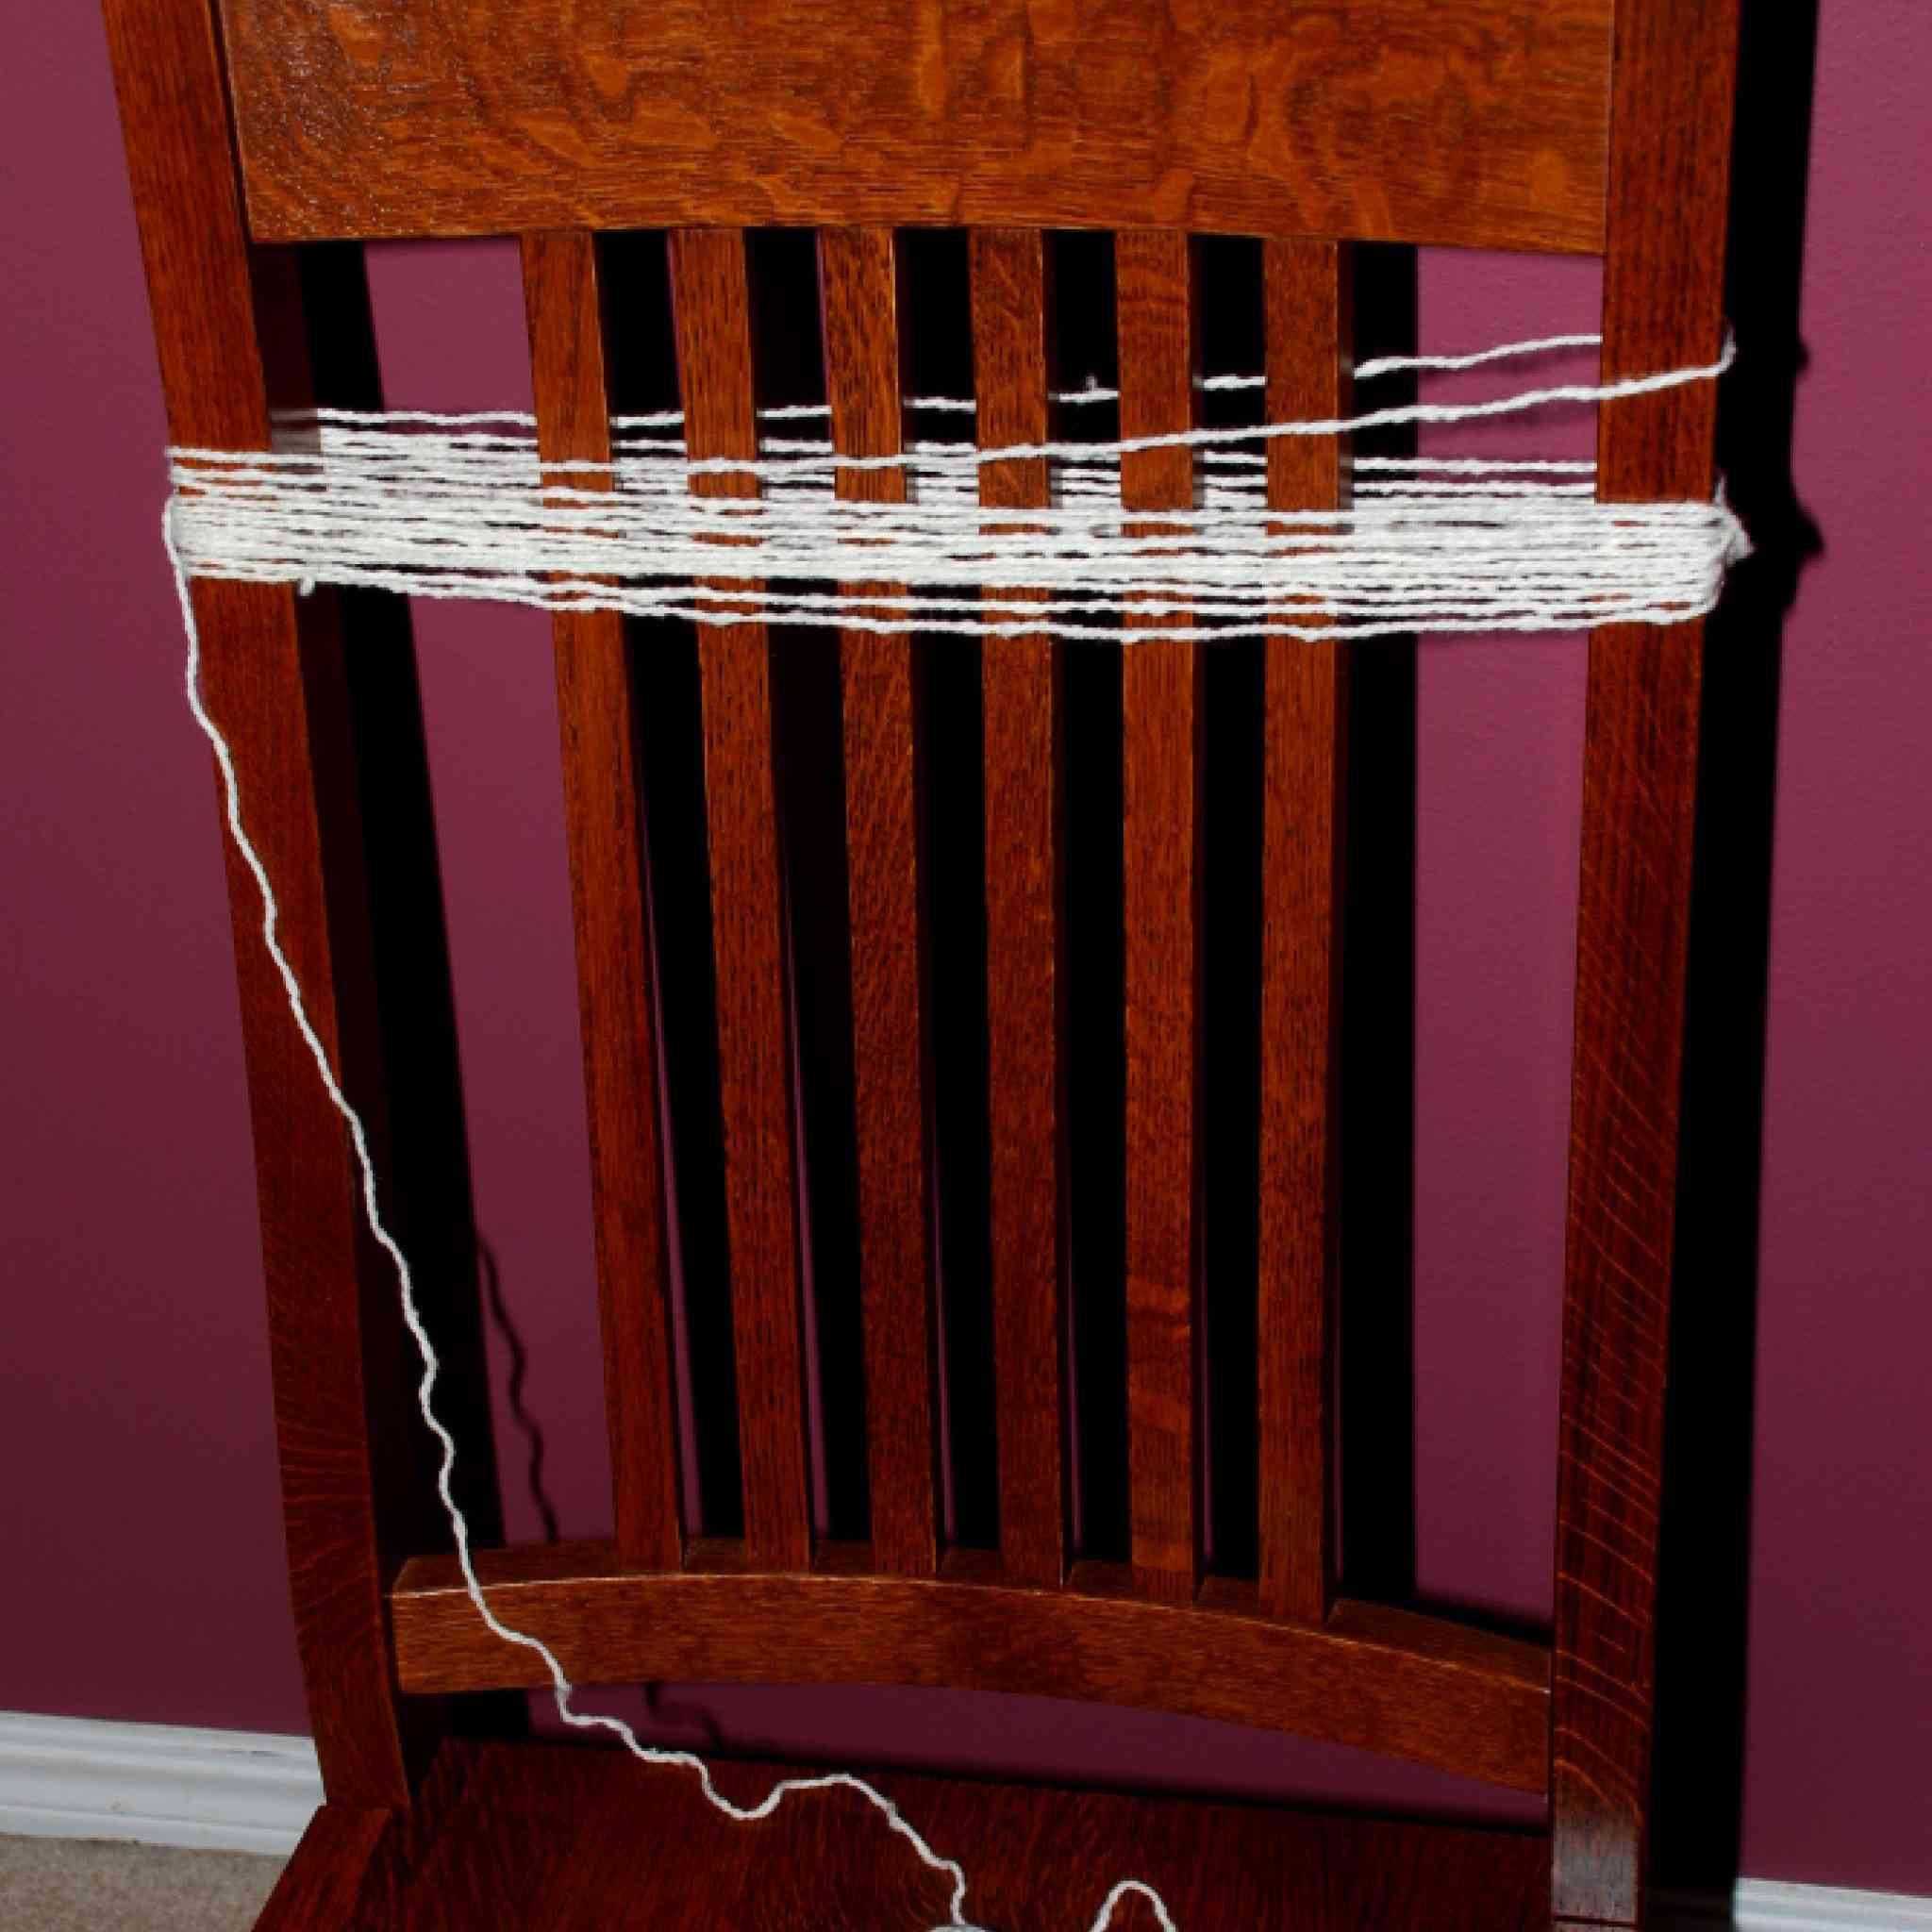 White yarn wrapped around the slats on the chair.